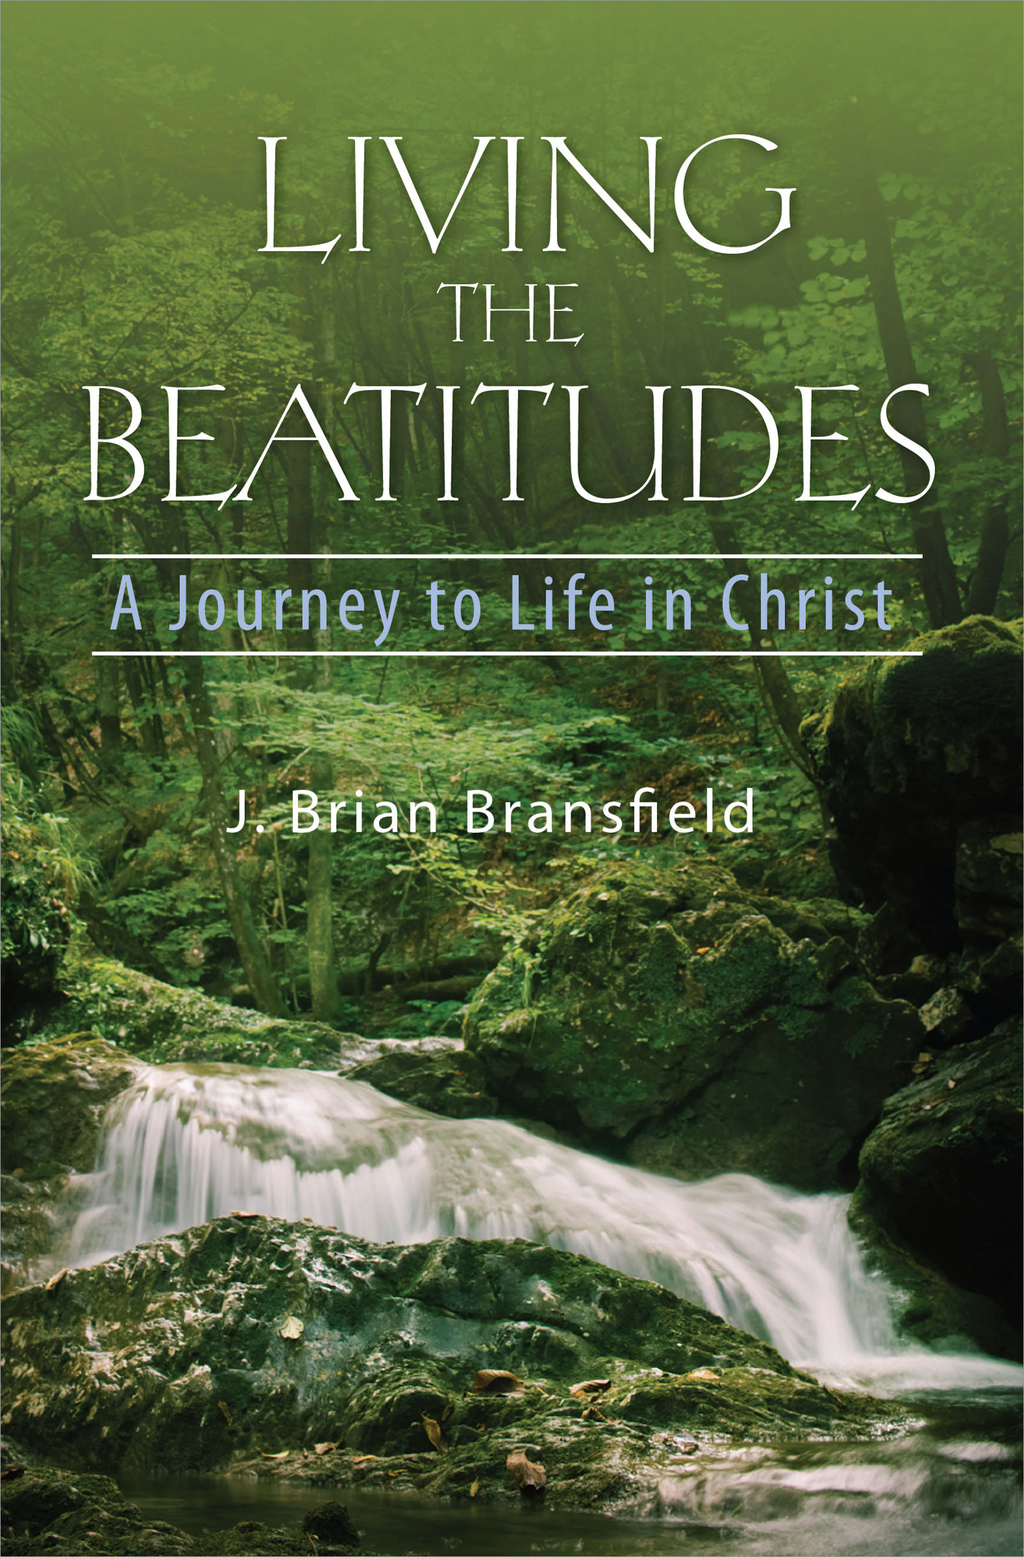 Living the Beatitudes By: J. Brian Bransfield